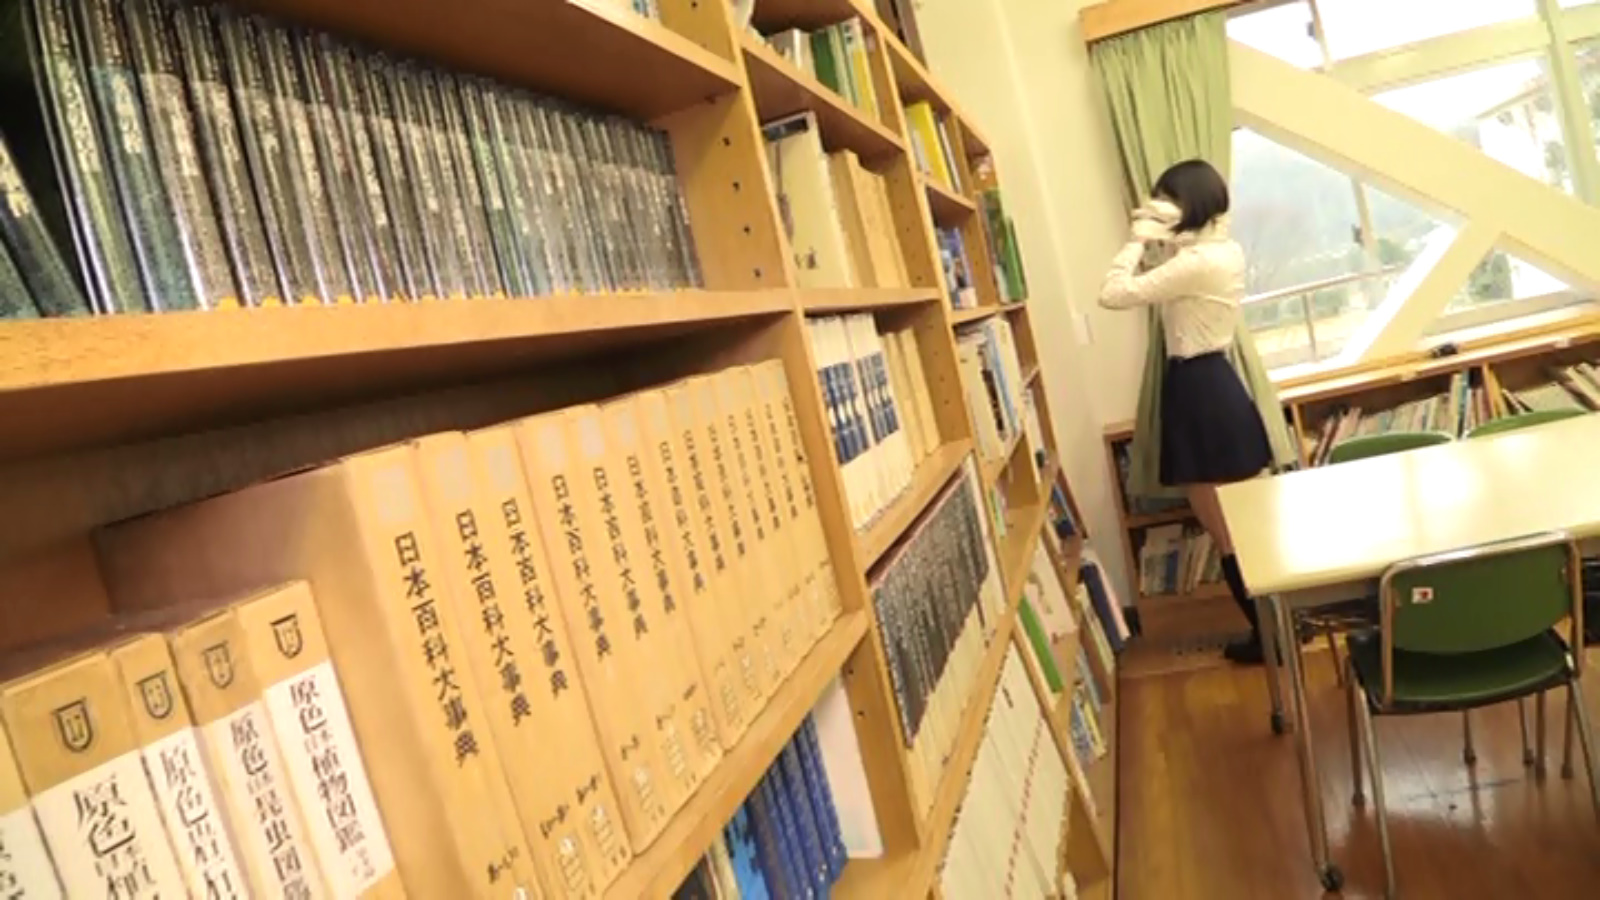 Every secret in the library162